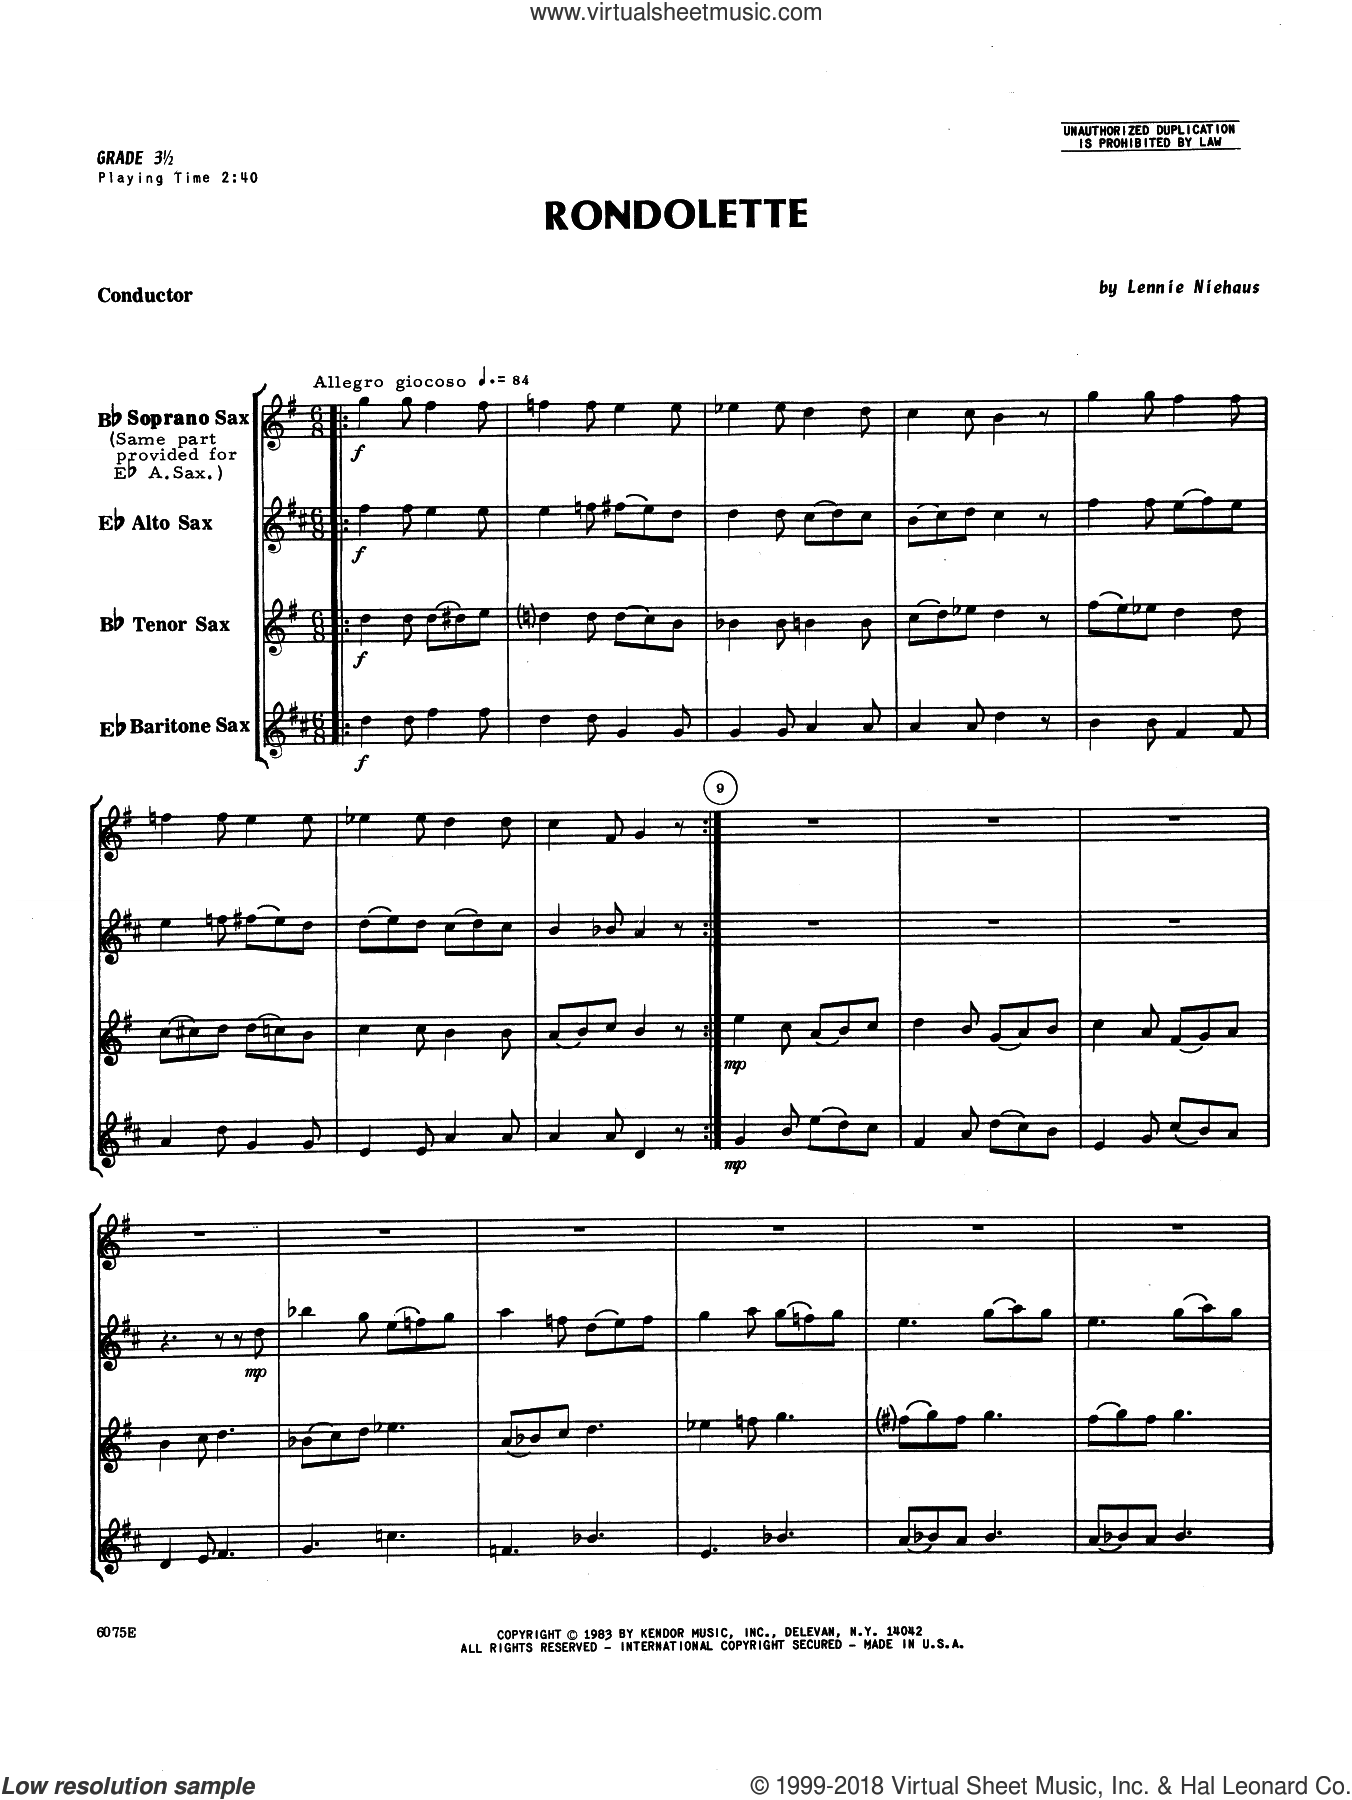 Rondolette (COMPLETE) sheet music for saxophone quintet by Lennie Niehaus, intermediate. Score Image Preview.